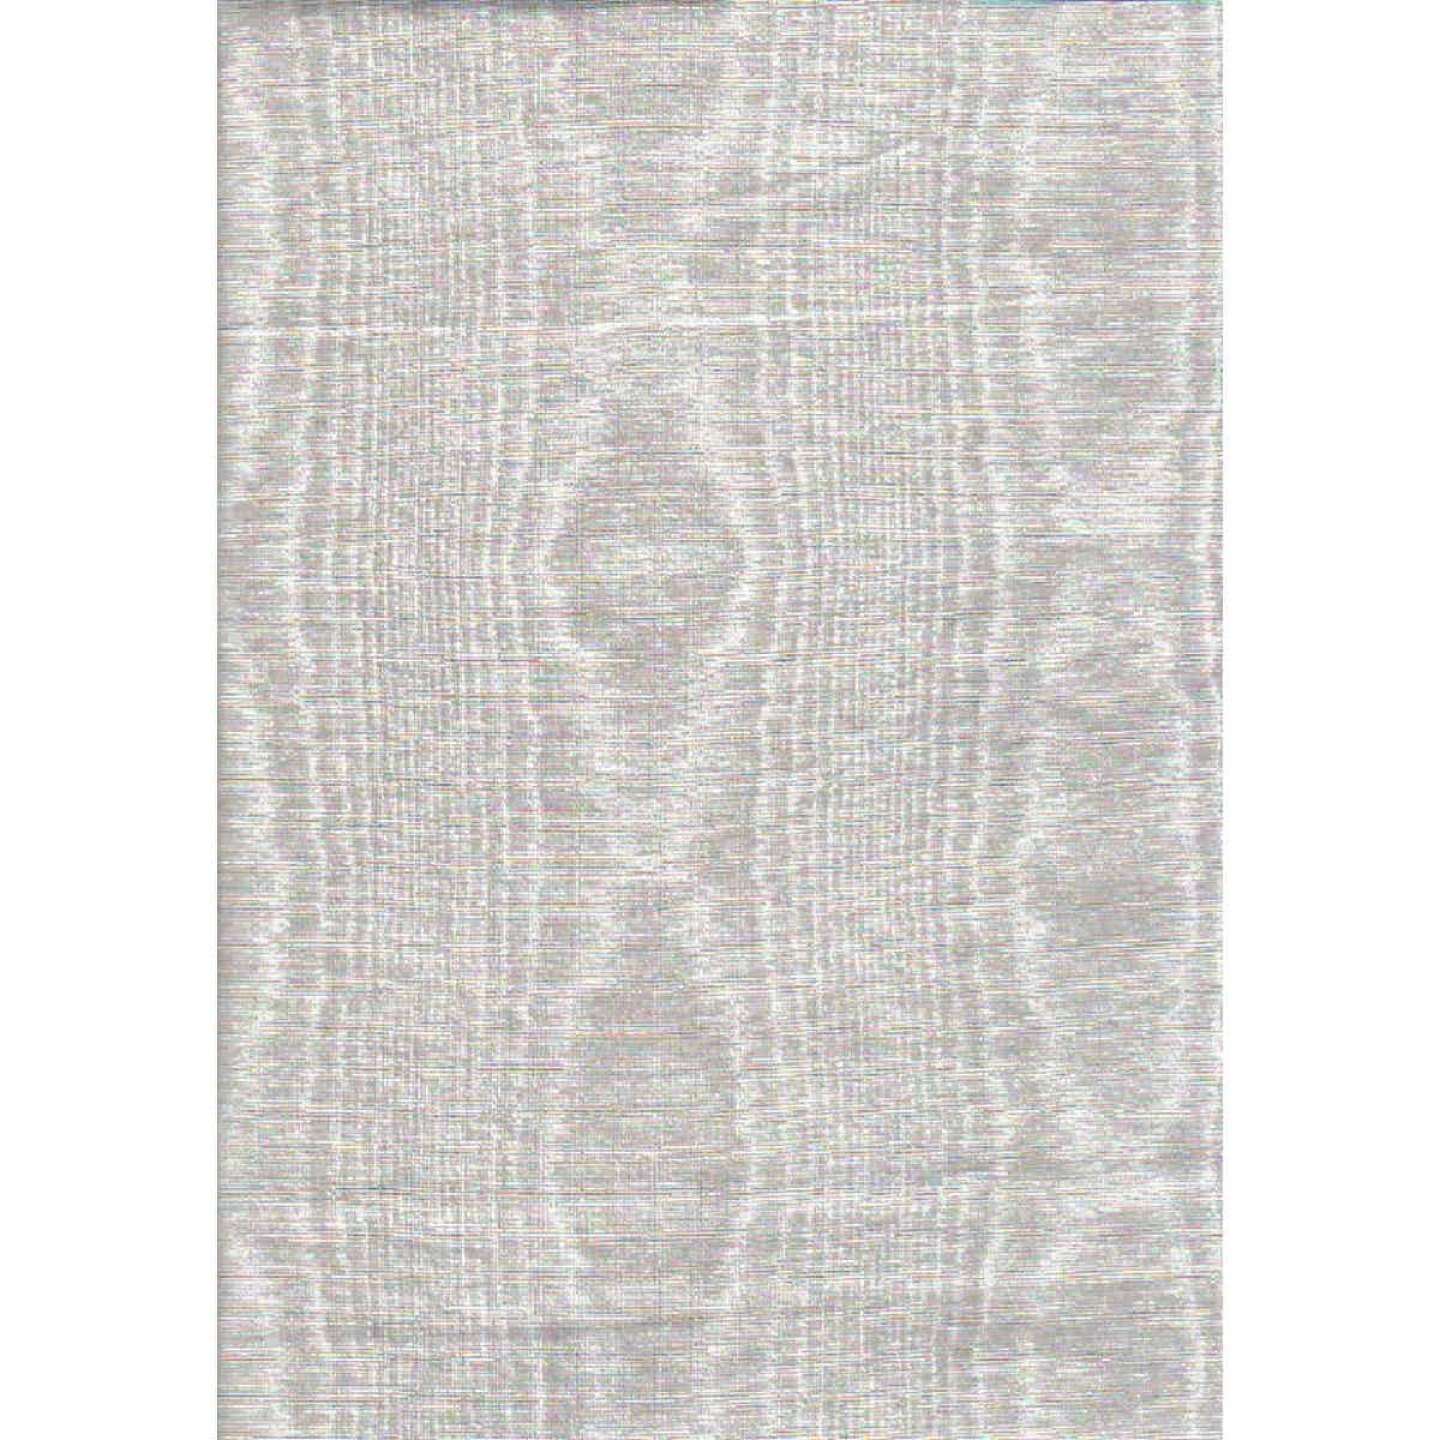 Nordic Shield 54 In. W. x 15 Yd. L. White Flannel Backed Vinyl Tablecloth Image 1